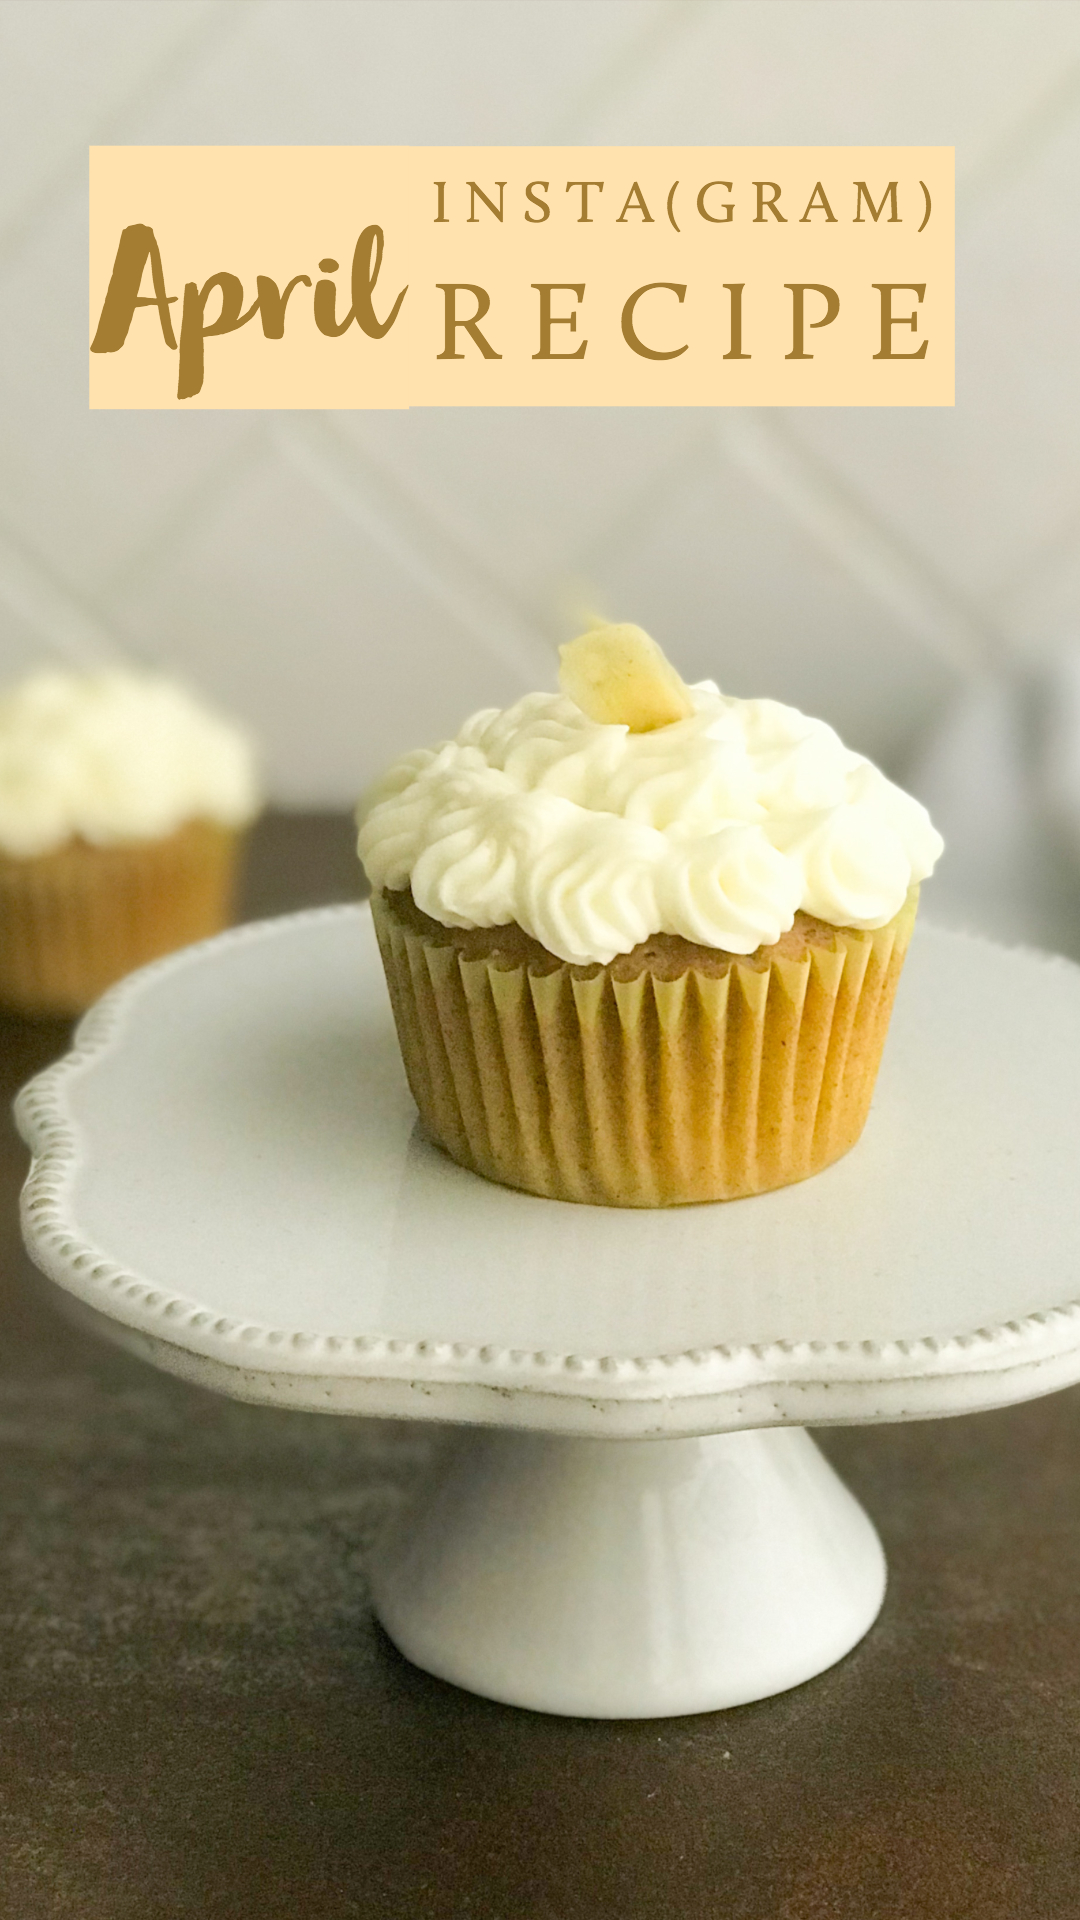 Lemon-Ginger Cream Cheese Frosting